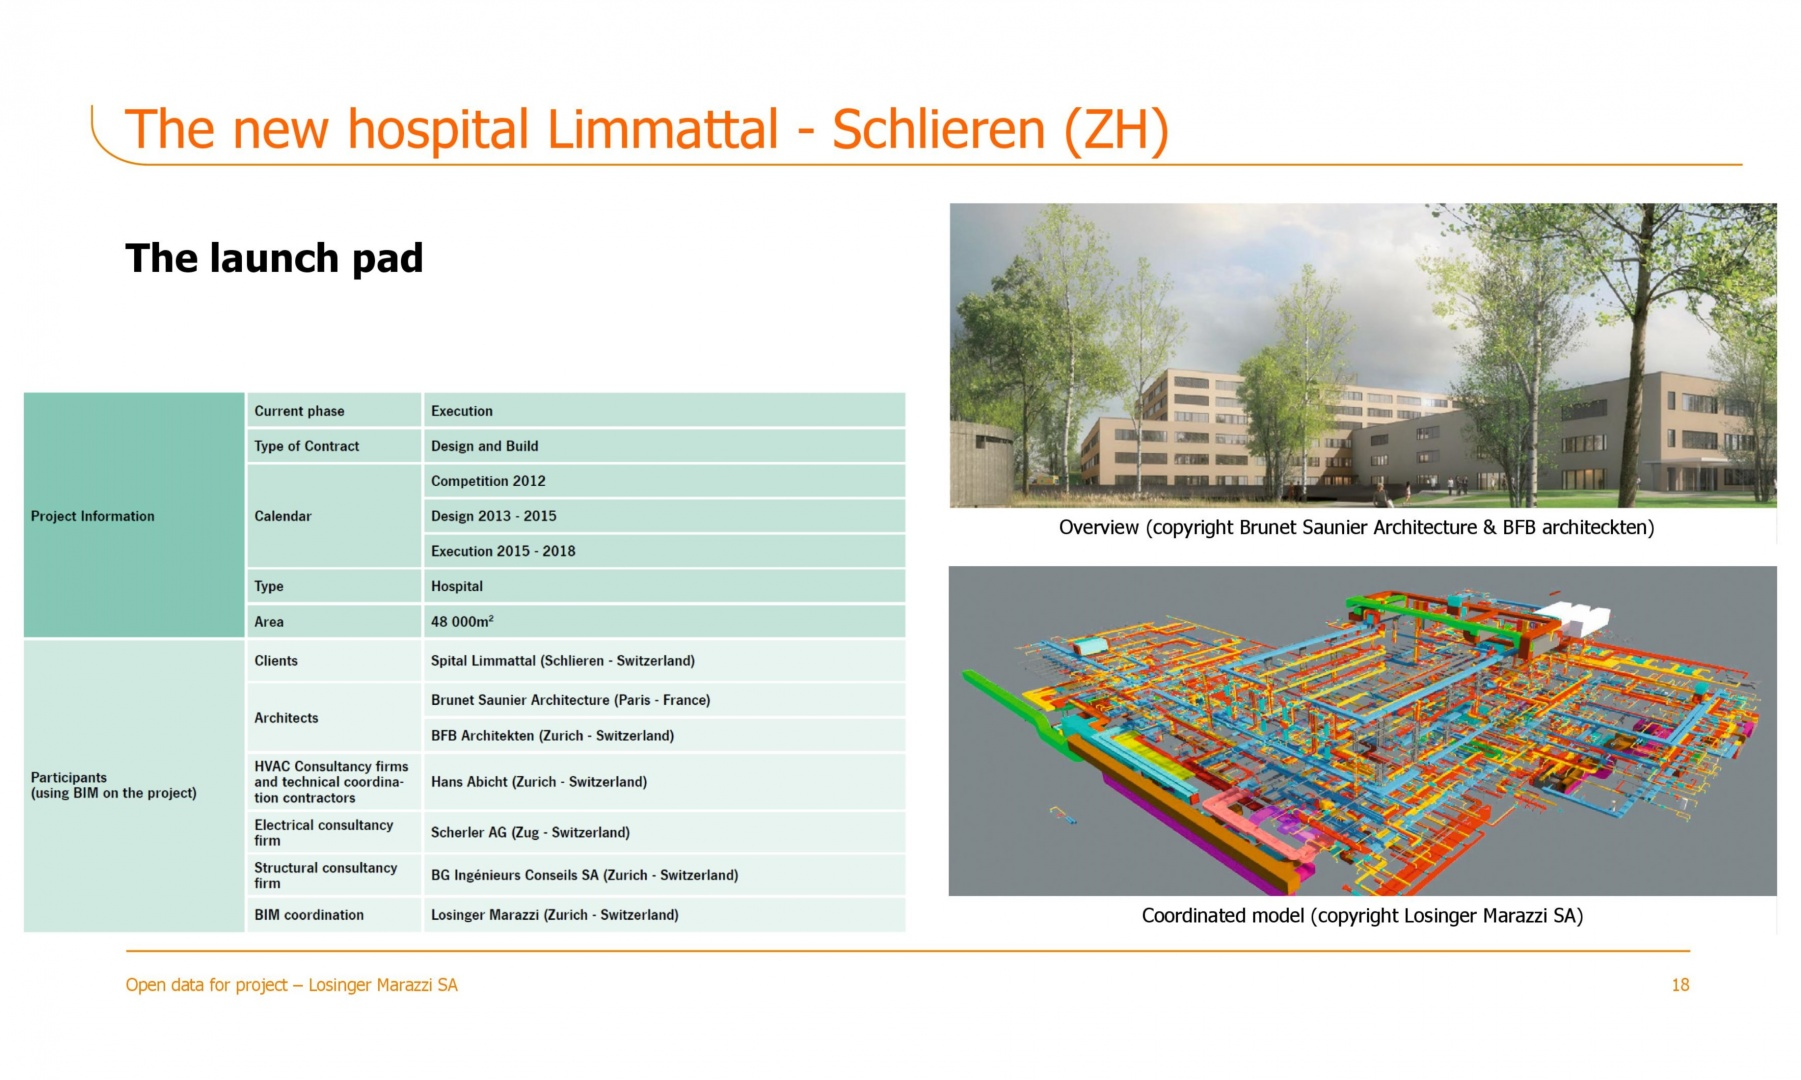 The new hospital Limmattal - Schlieren (ZH) © Losinger Marazzi SA